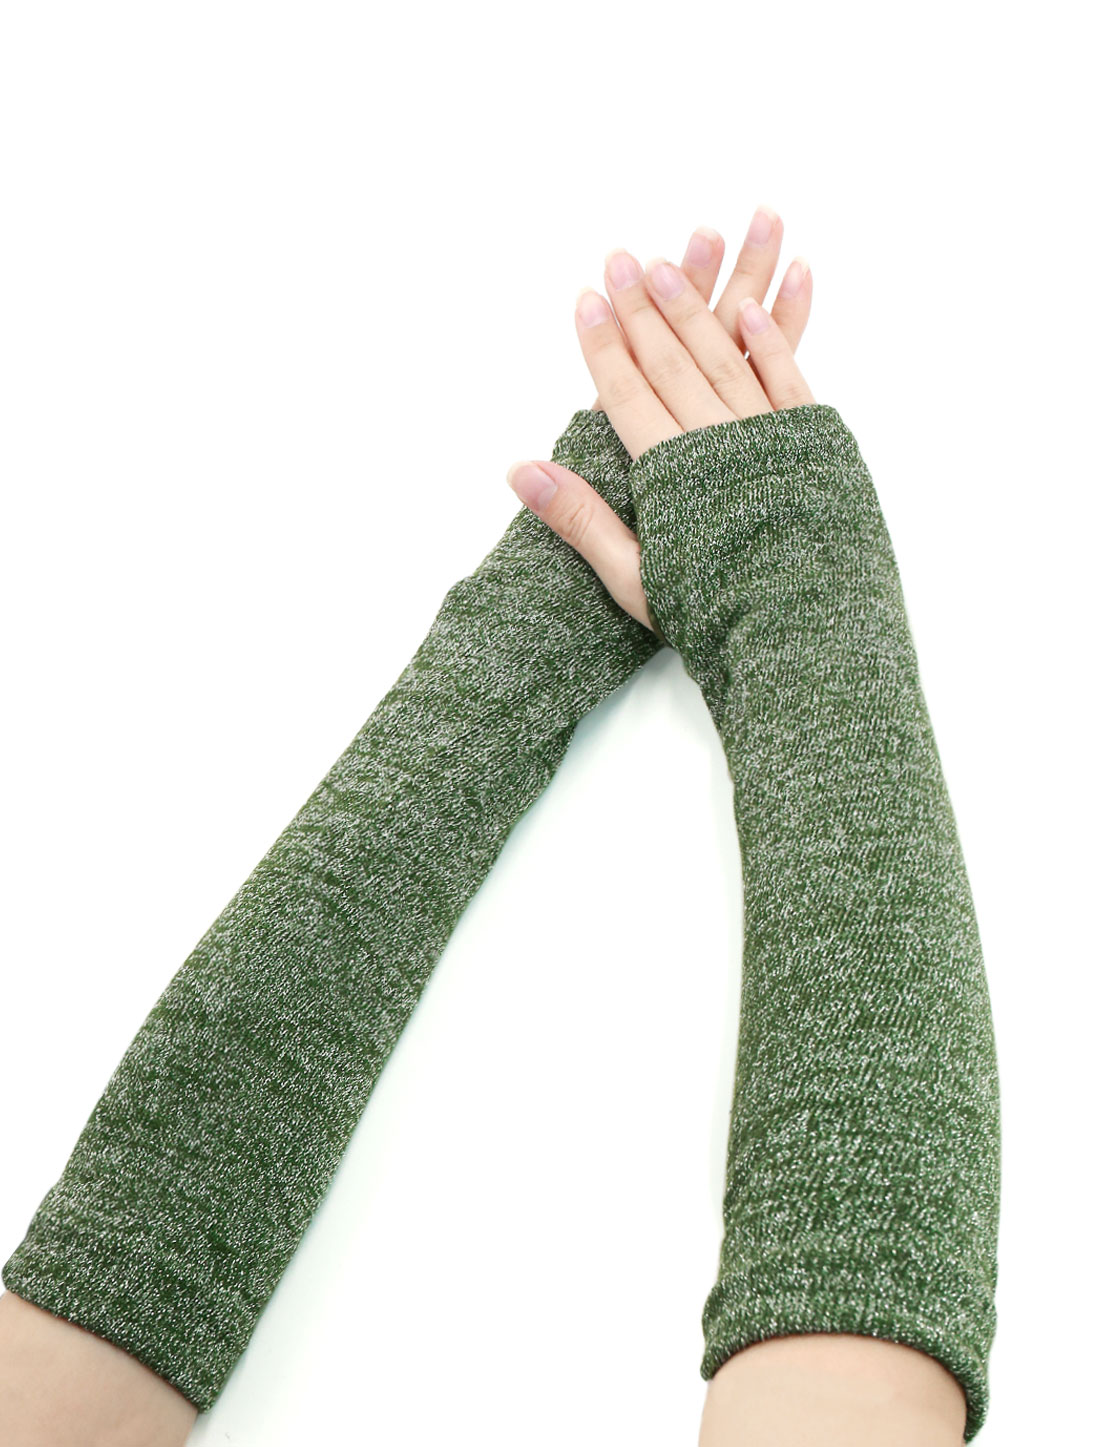 Ladies Thumbhole Ribbed Shiny Knit Arm Warmers Green Silver